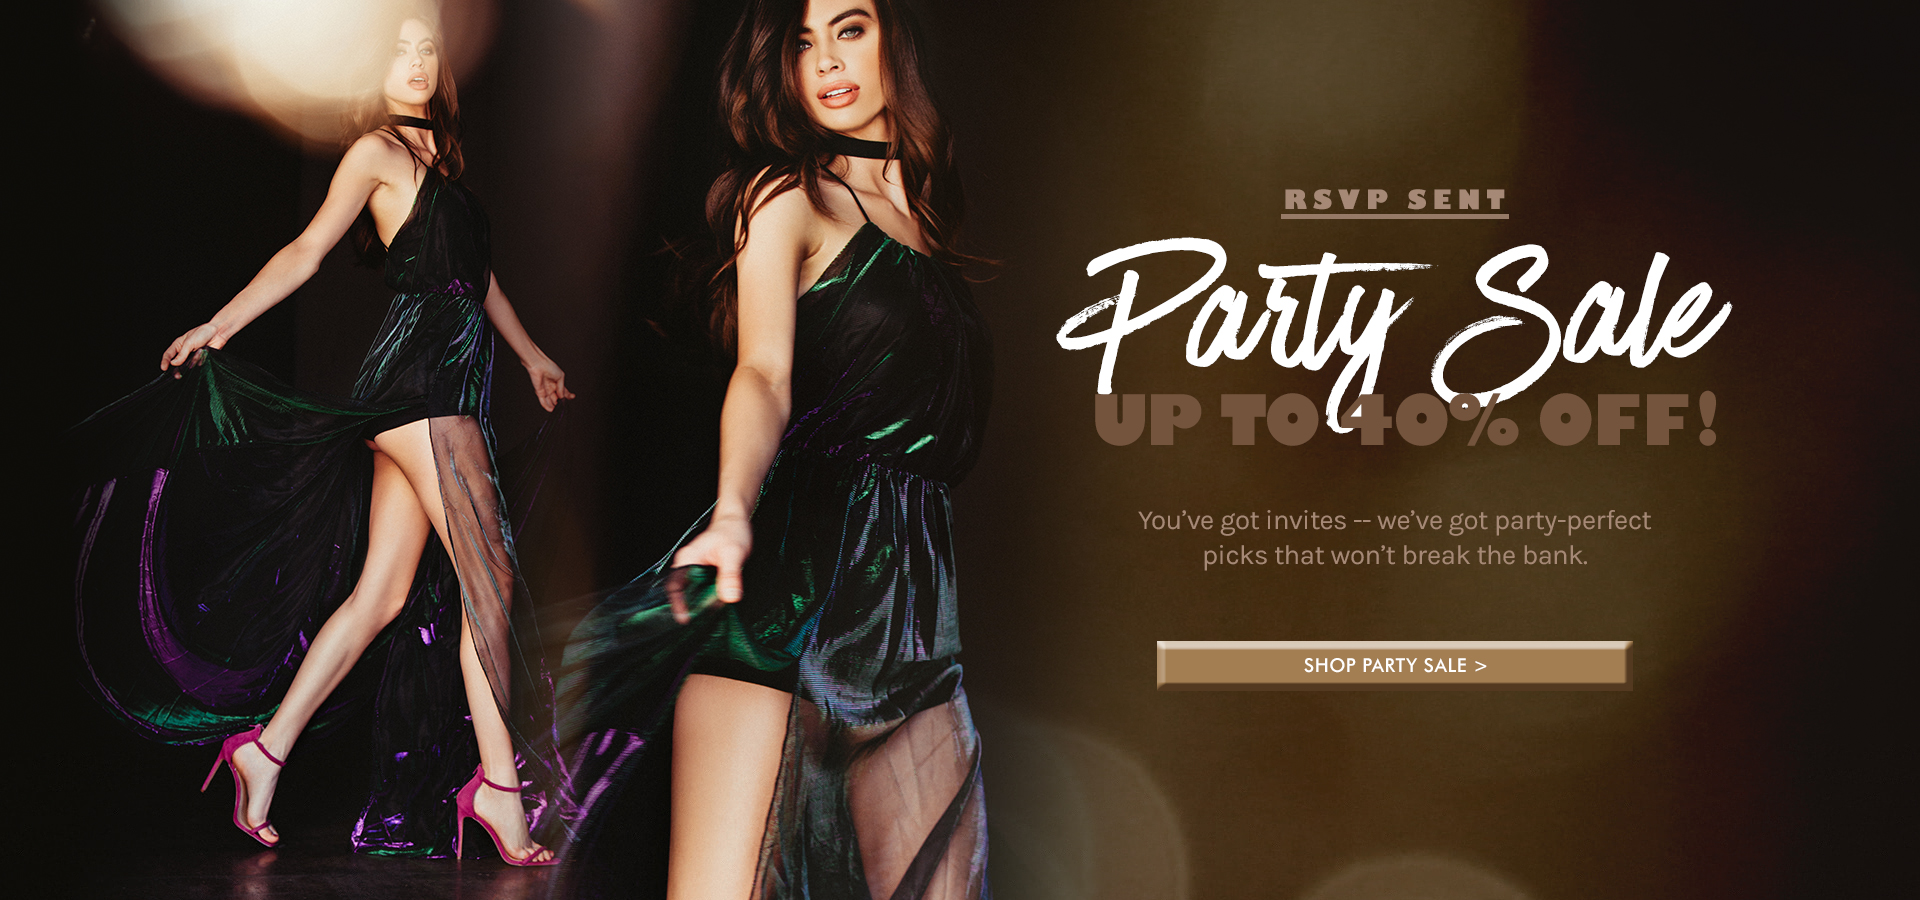 PARTY SALE UP TO 40% OFF